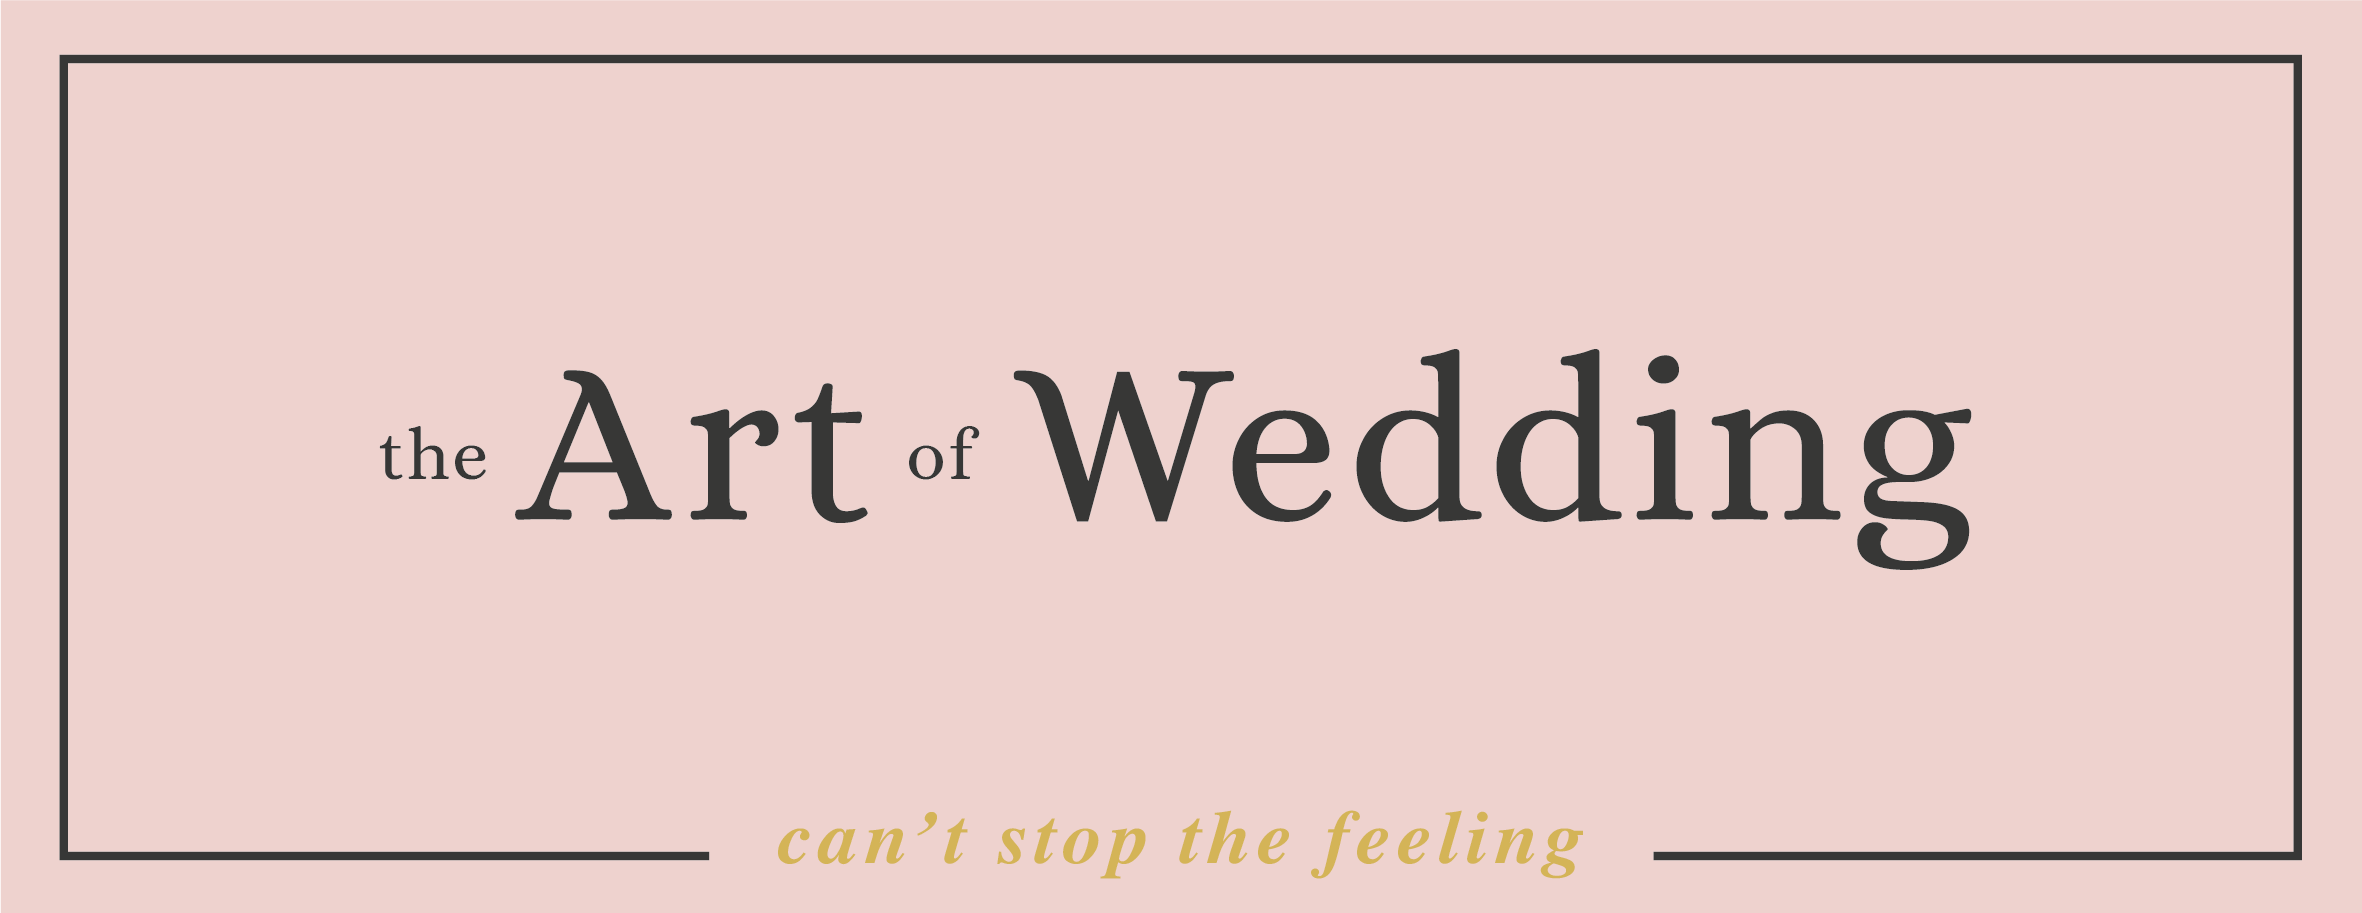 The Art of Wedding - Trouw event in Haarlem